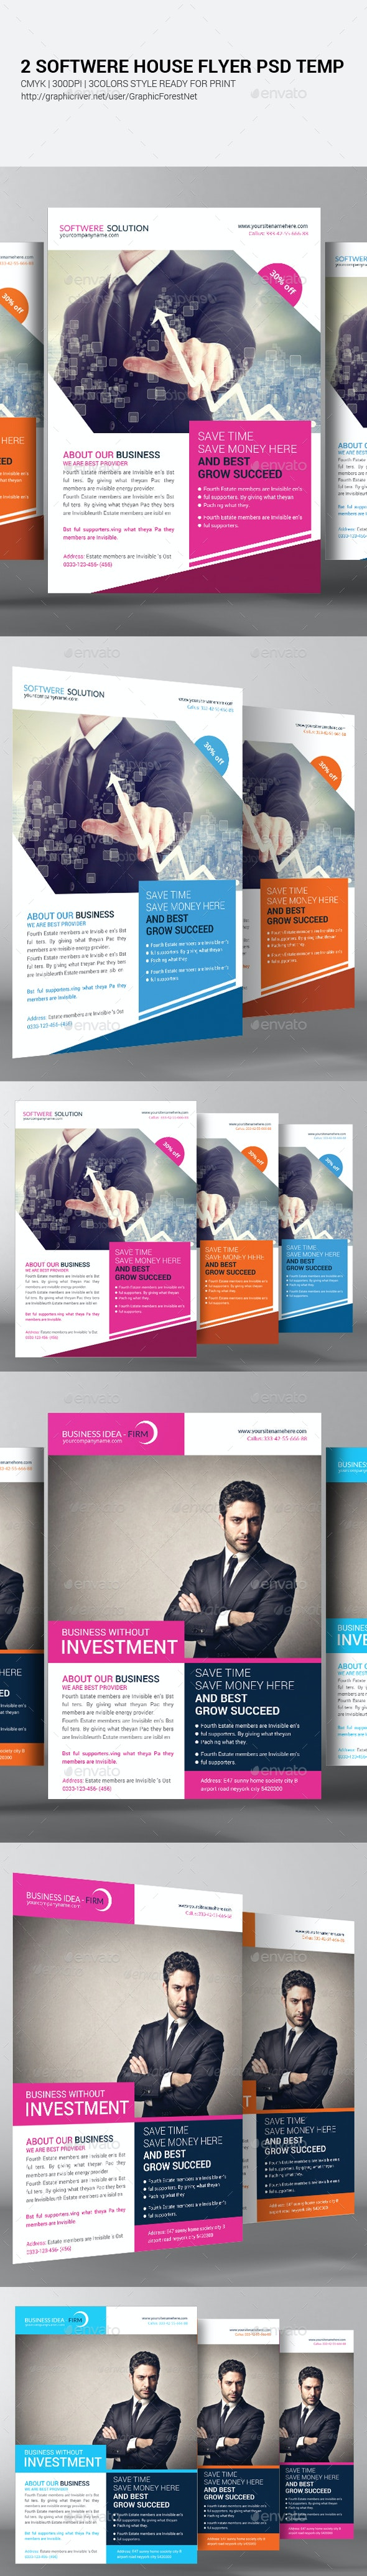 2 Software House Flyer Template - Corporate Flyers